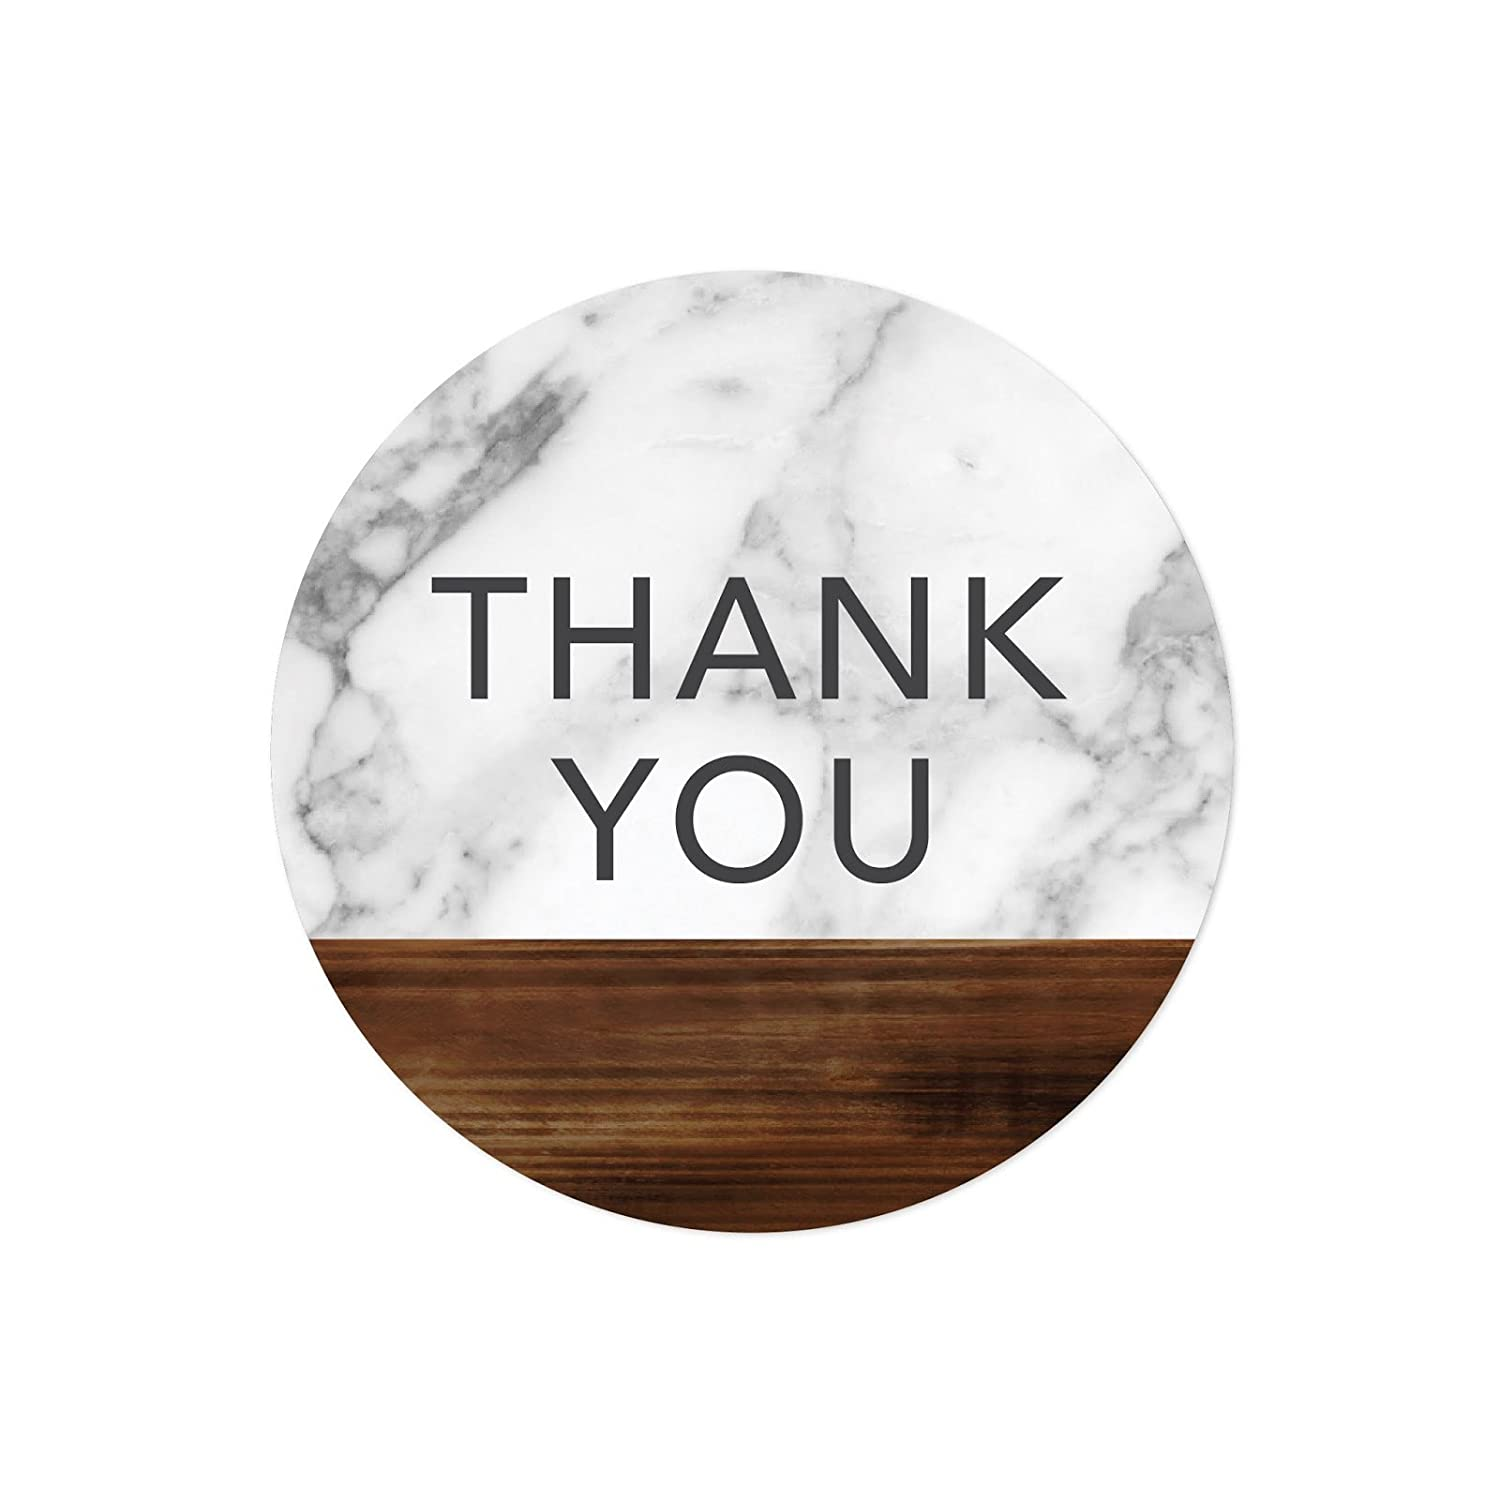 Amazon com andaz press round 2 inch circle label stickers marble and dark rustic wood thank you 40 pack party favor envelope stationary seals colored